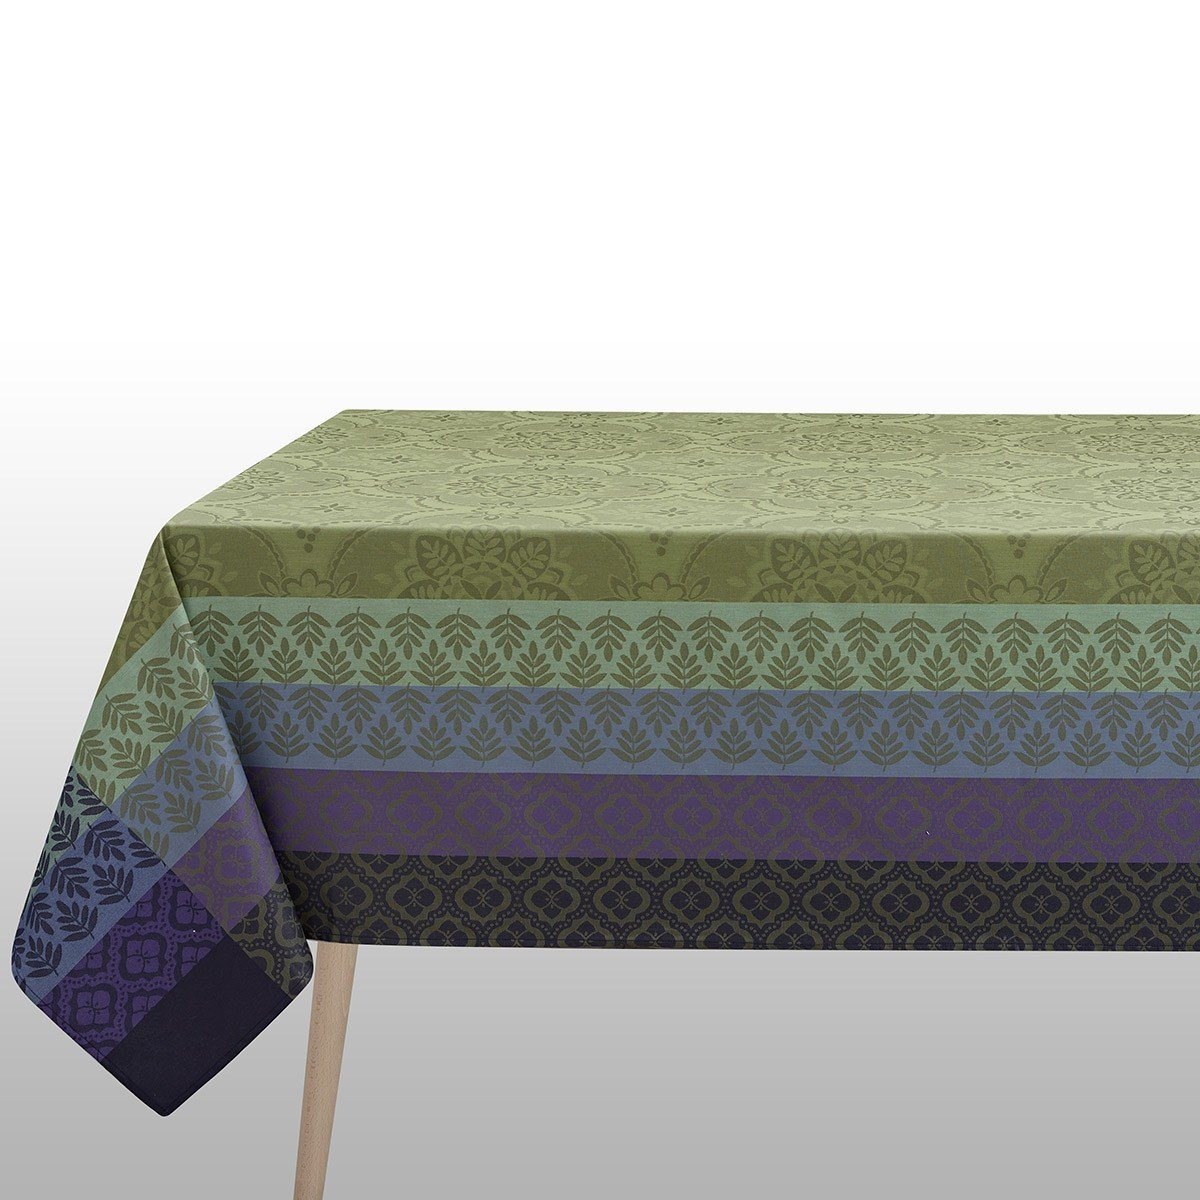 Bastide Coated Table Linens in Olive